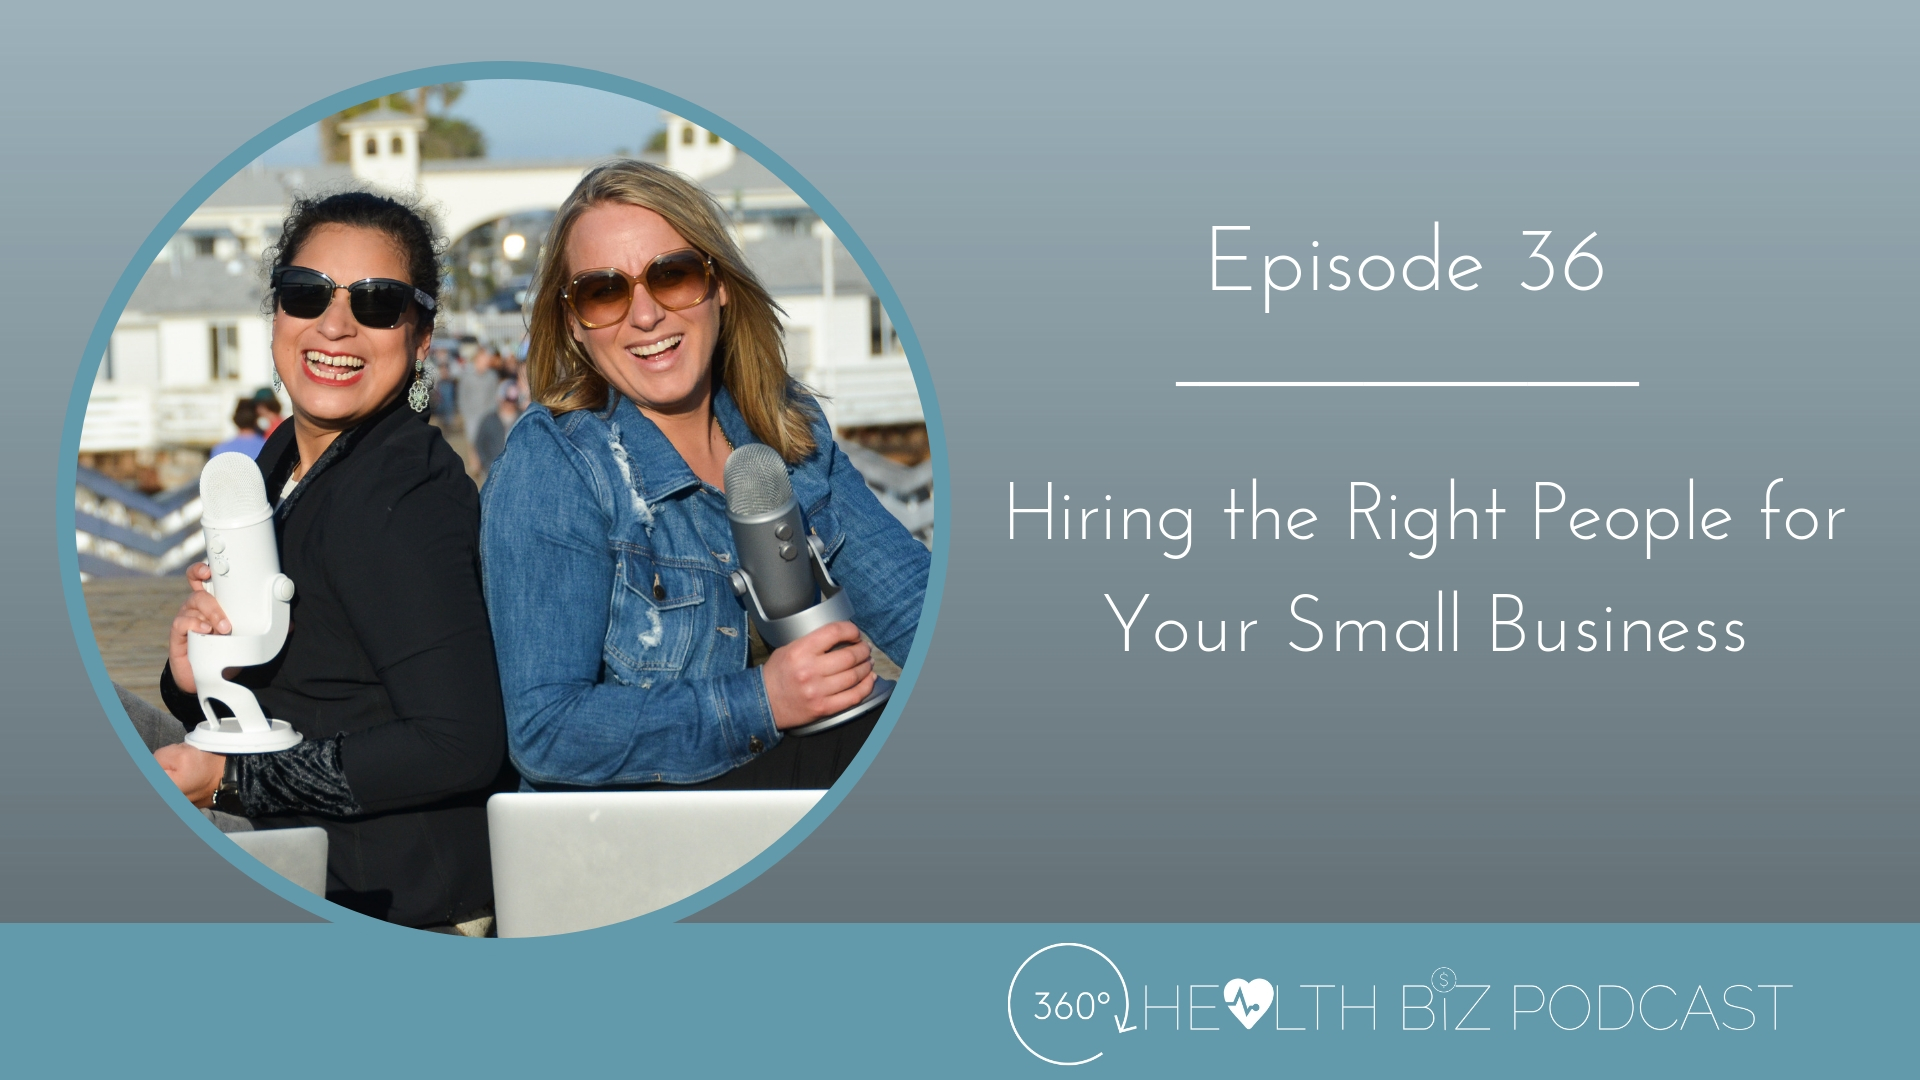 Hiring the Right People for Your Small Business